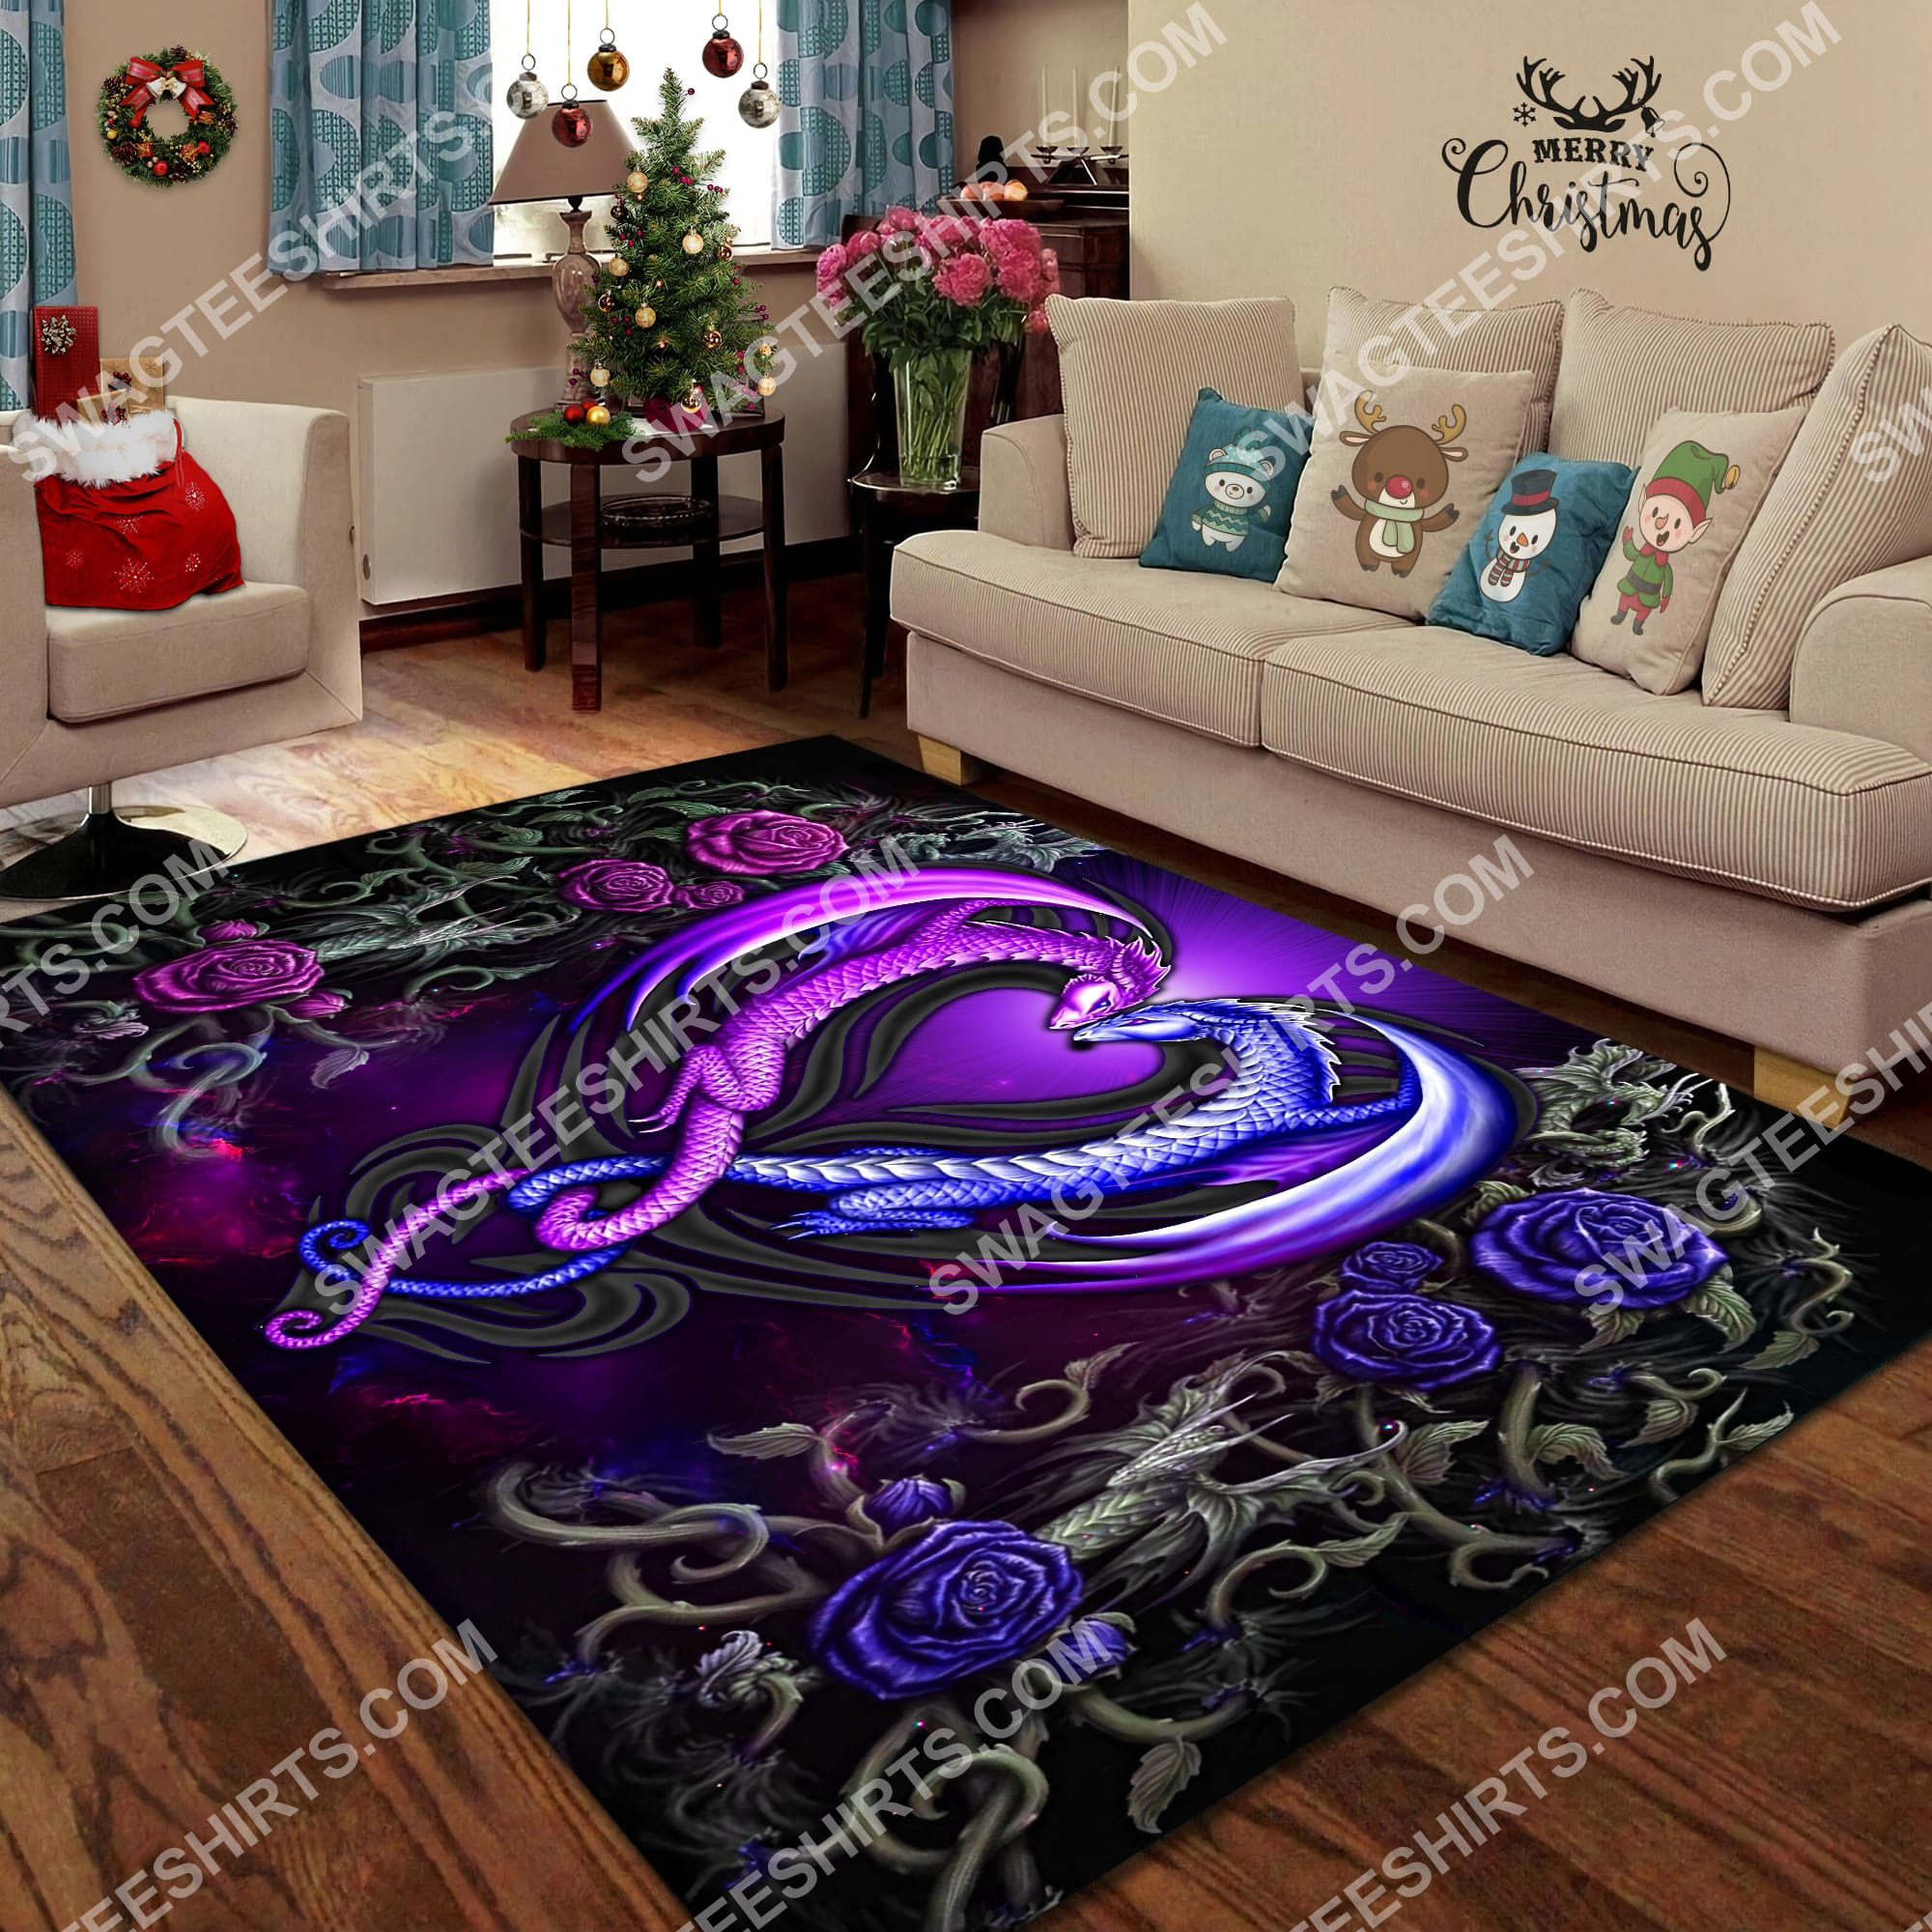 roses dragon couples all over printed rug 2(1)